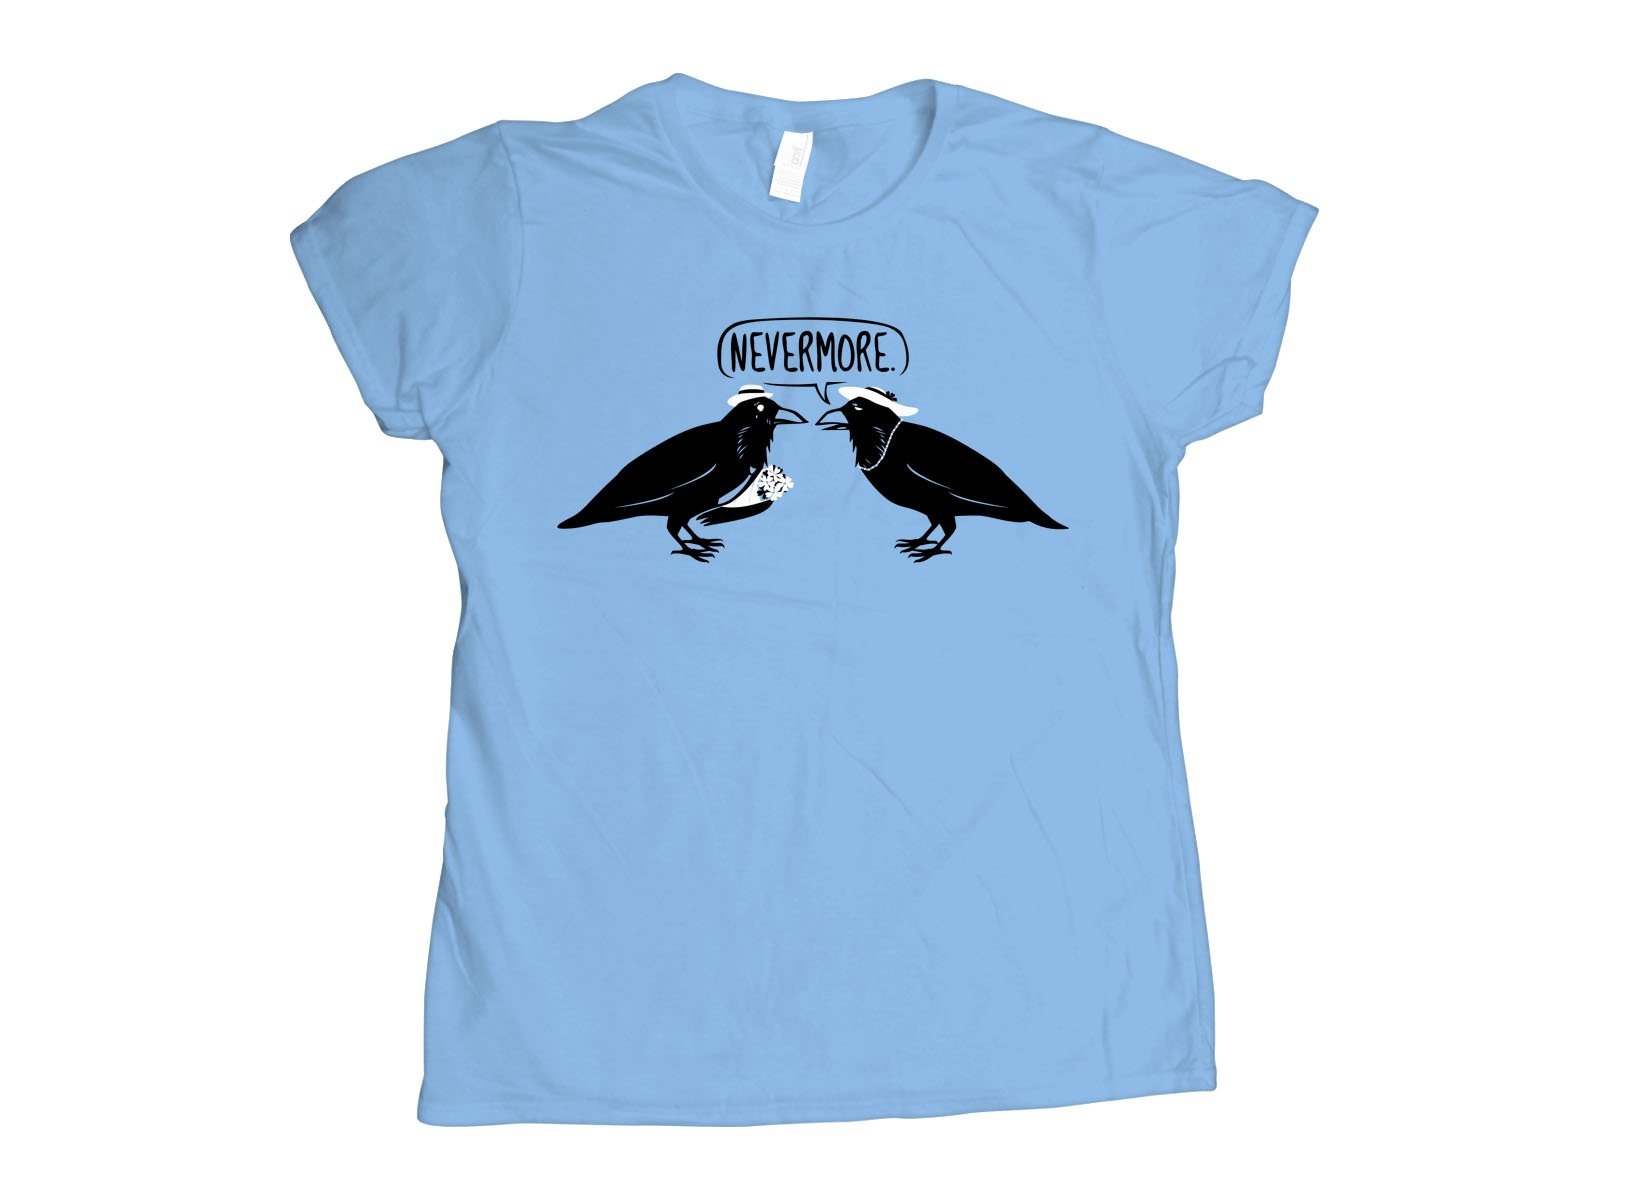 Nevermore on Womens T-Shirt